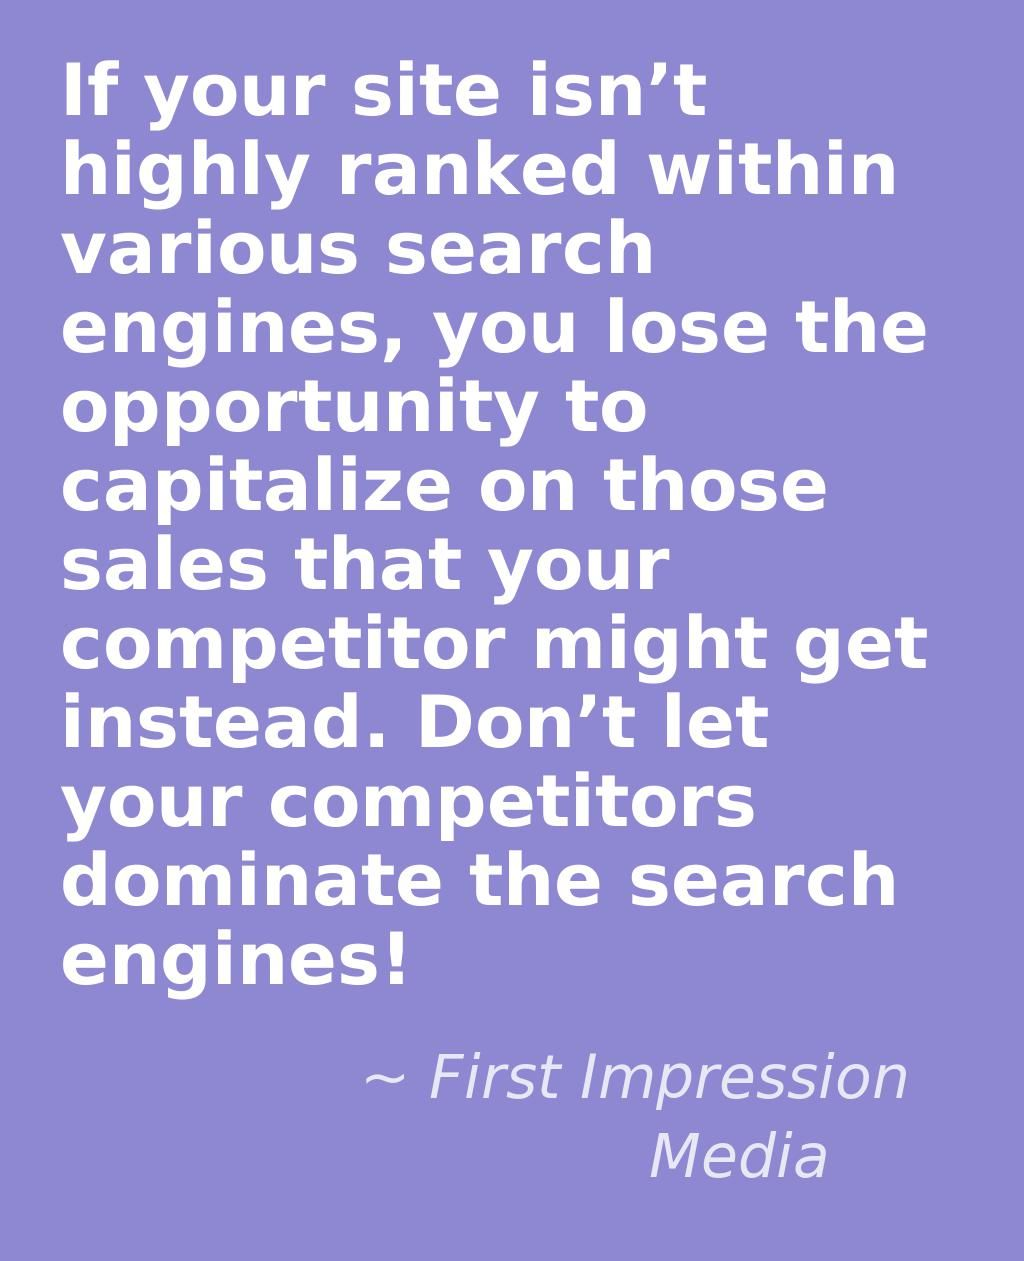 If your site isn't highly ranked within various search engines, you lose the opportunity to capitalize on those sales that your competitor might get instead. Don't let your competitors dominate the search engines!